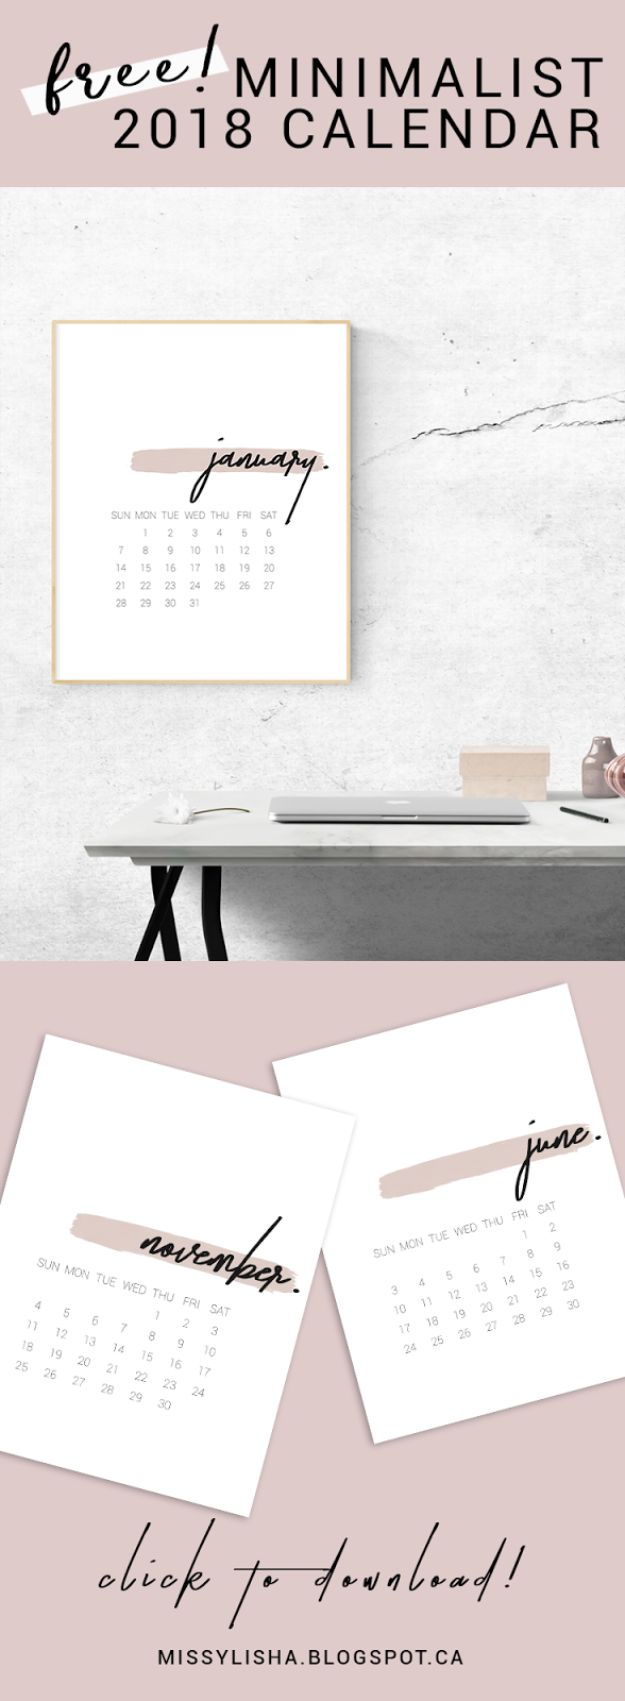 DIY Calendars - 2018 Minimal Calendar - Homemade Calender Ideas That Make Great Cheap Gifts for Christmas - Desk, Wall and Glass Dry Erase Organizing Calendar Projects With Step by Step Tutorials - Paint, Stamp, Magnetic, Family Planner and Organizer #diycalendar #diyideas #crafts #calendars #organizing #diygifts #calendars #diyideas